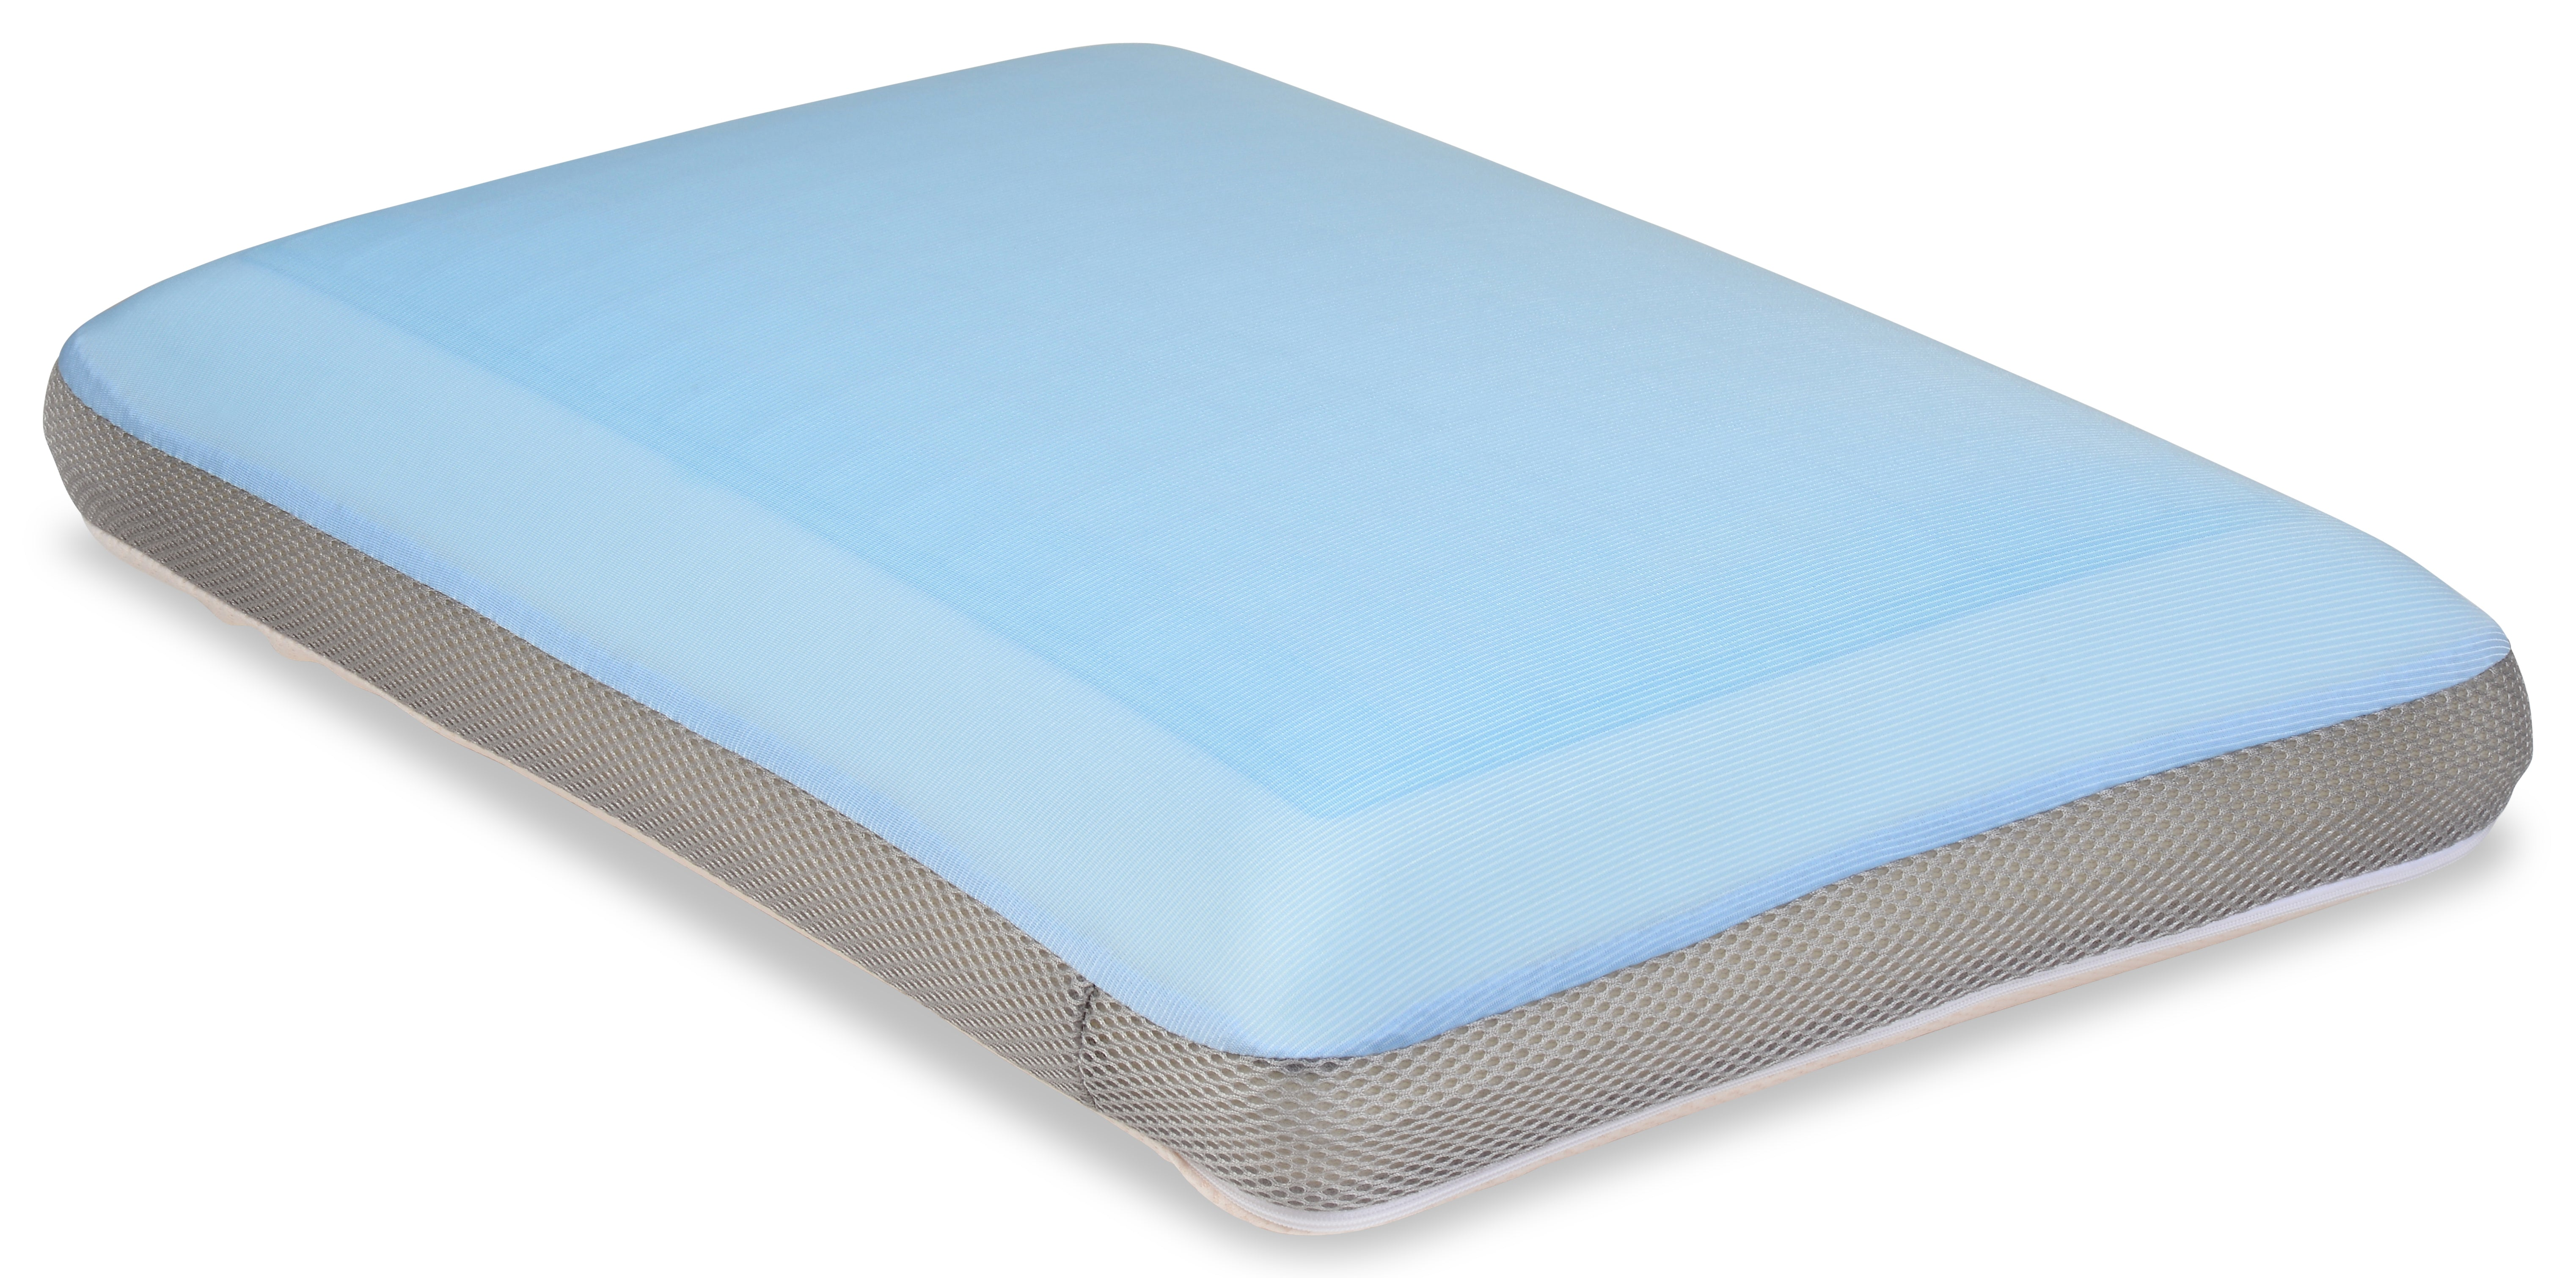 Soft Cooling Gel Memory Foam Pillow Advanced Three Fabric Cover